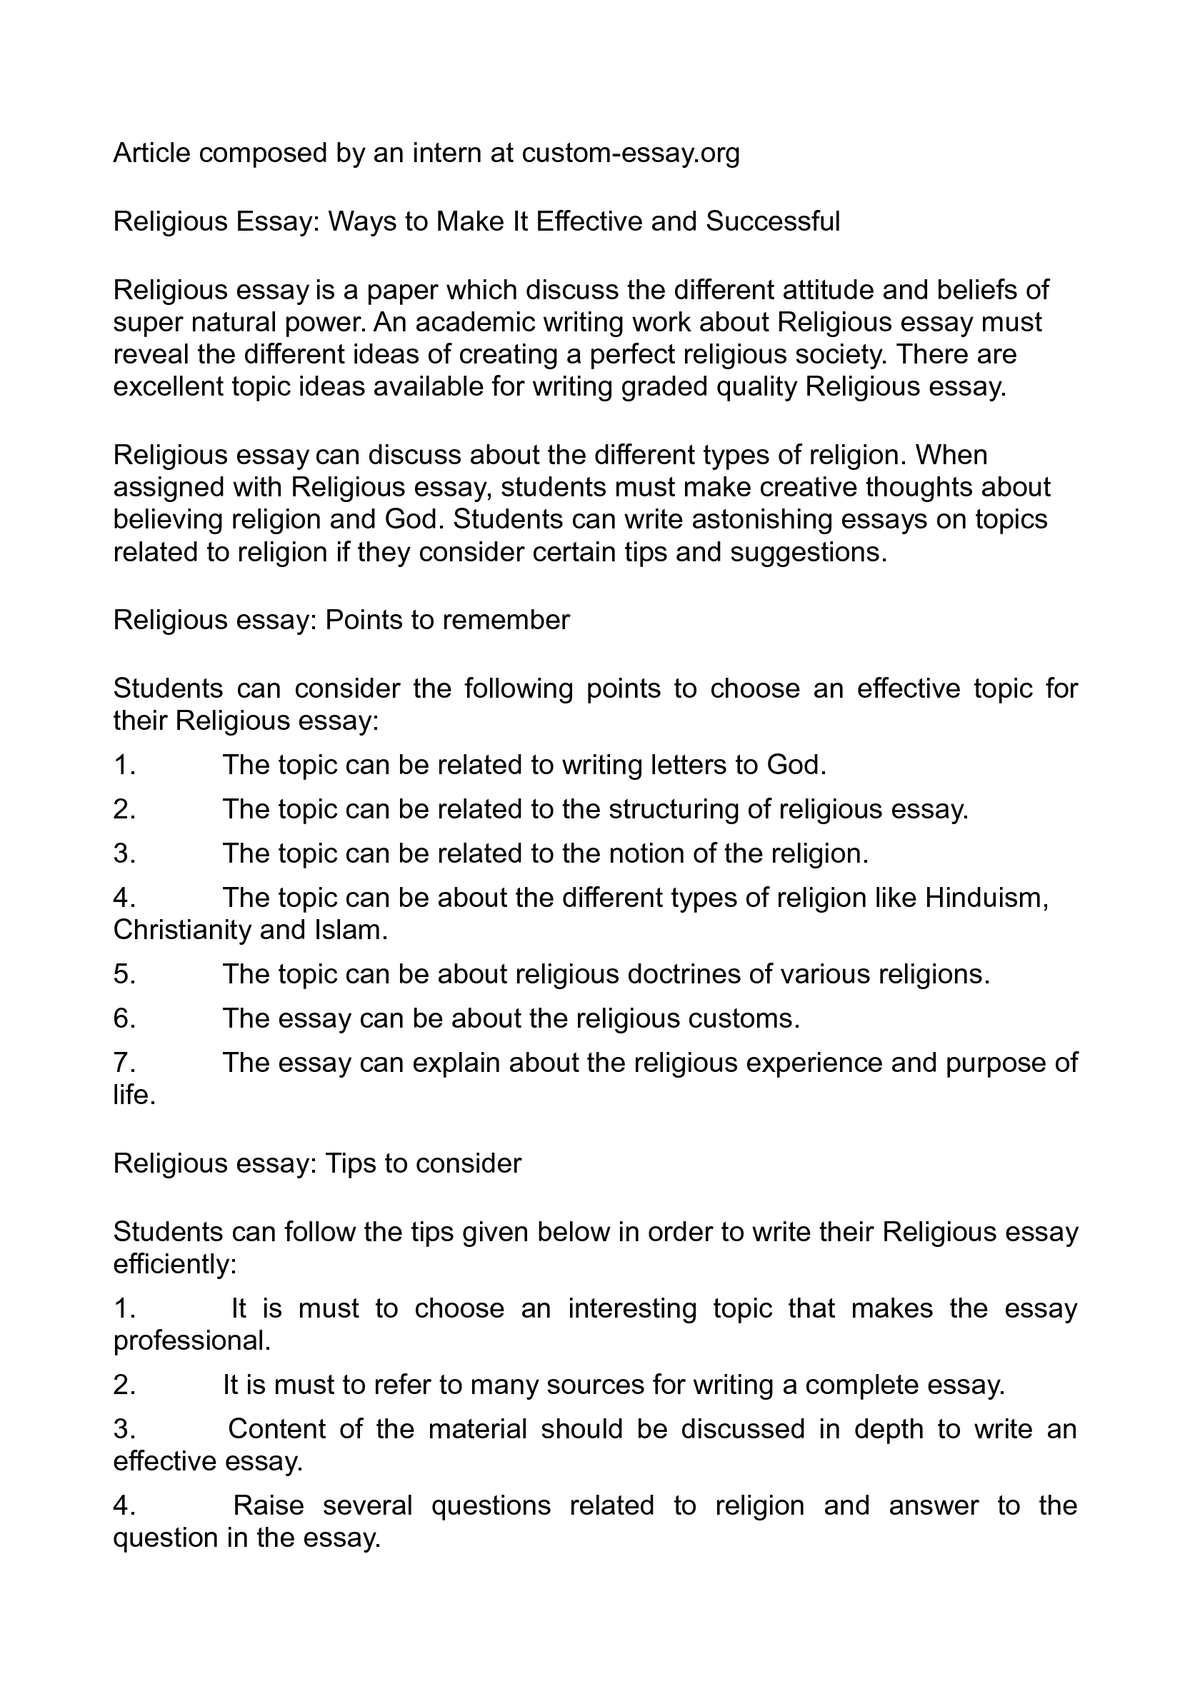 Calamo  Religious Essay Ways To Make It Effective And Successful